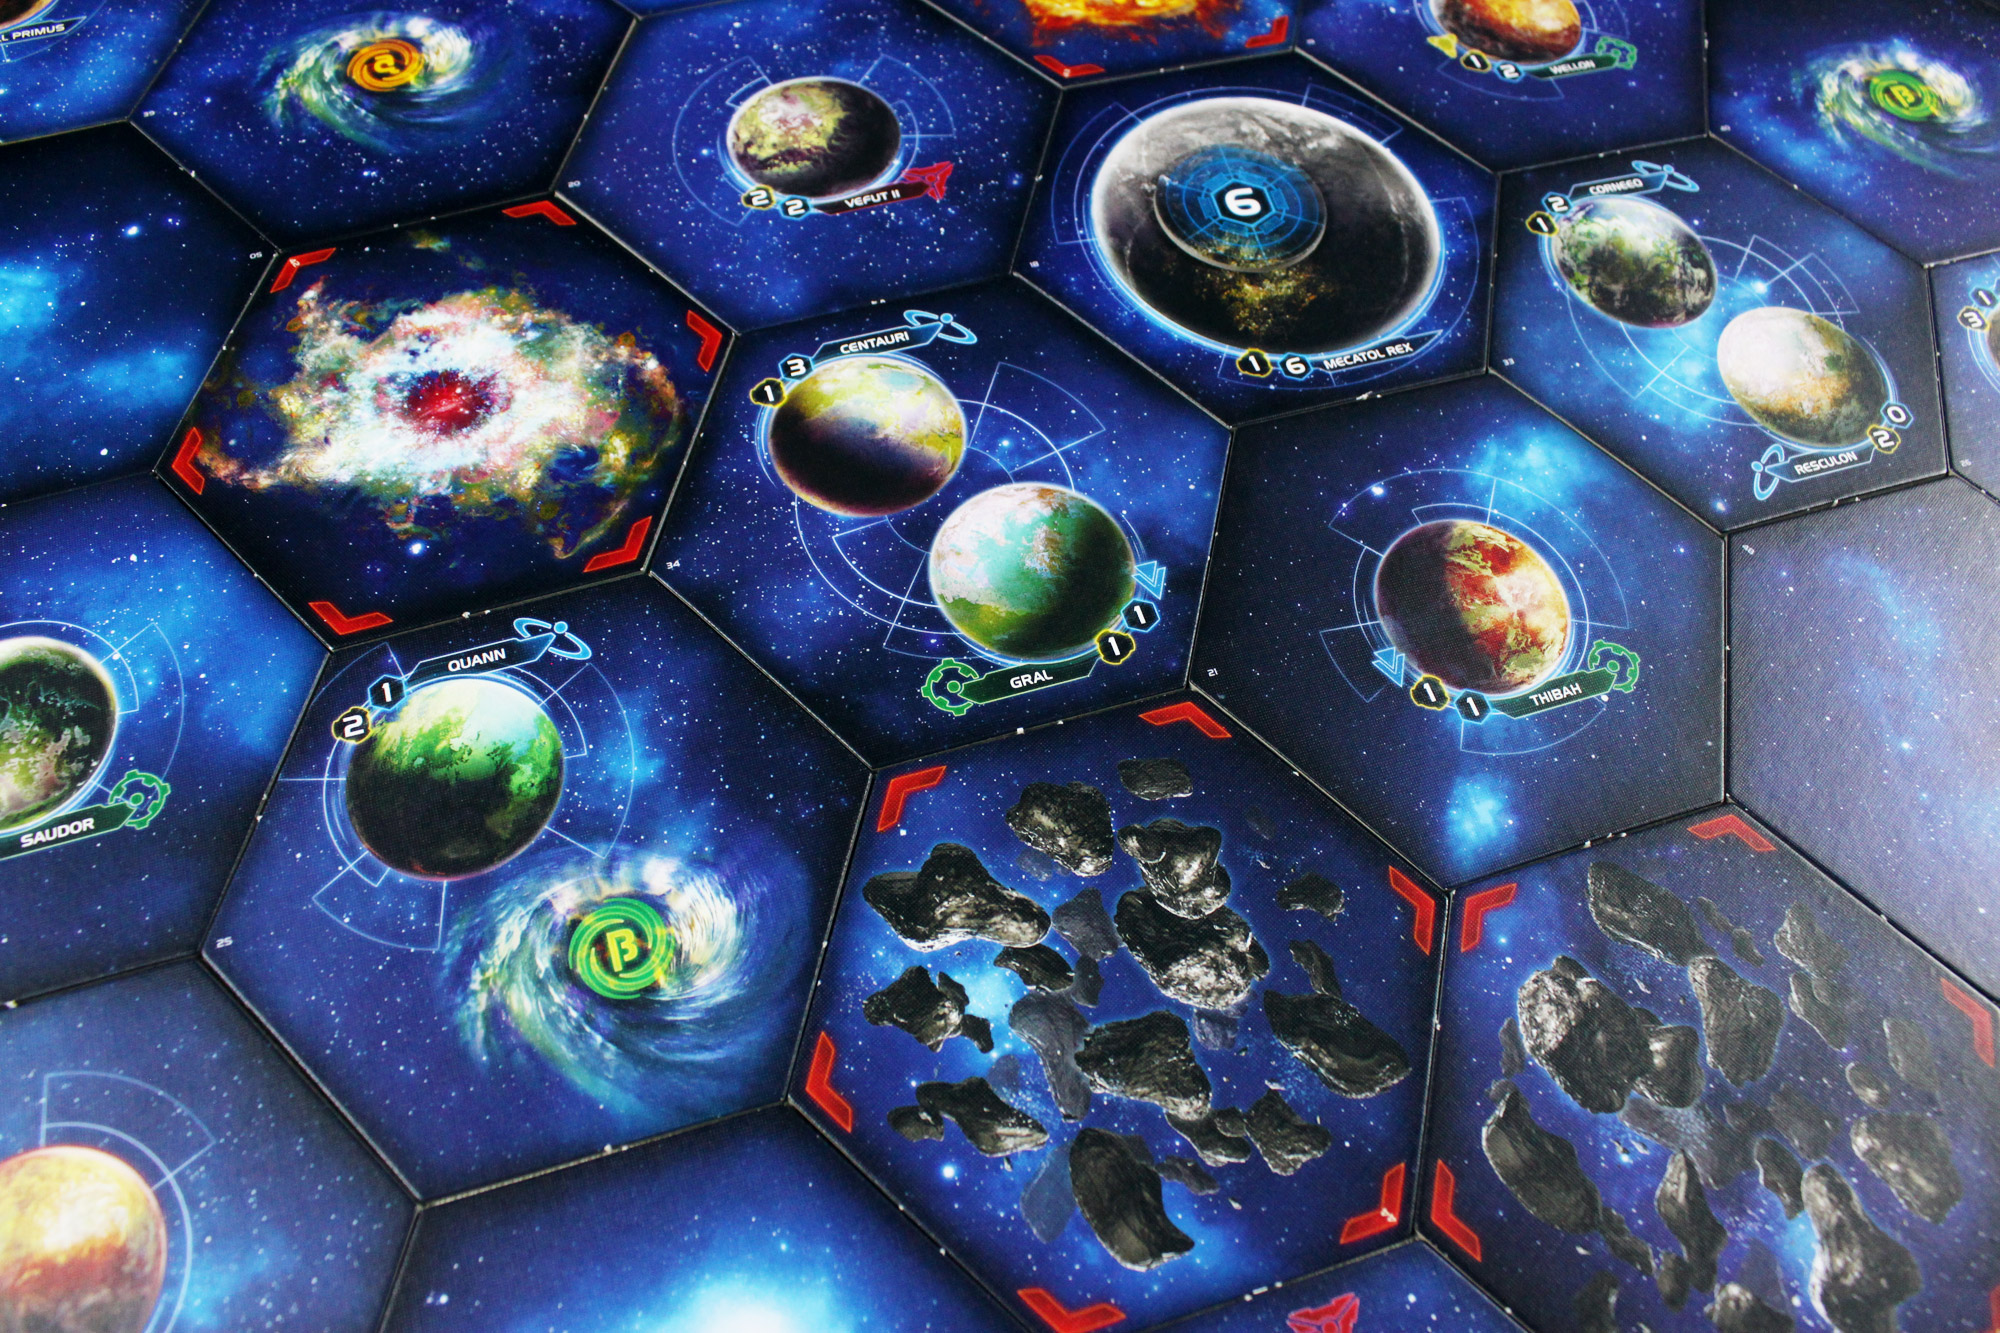 Review: Twilight Imperium (4th Edition)